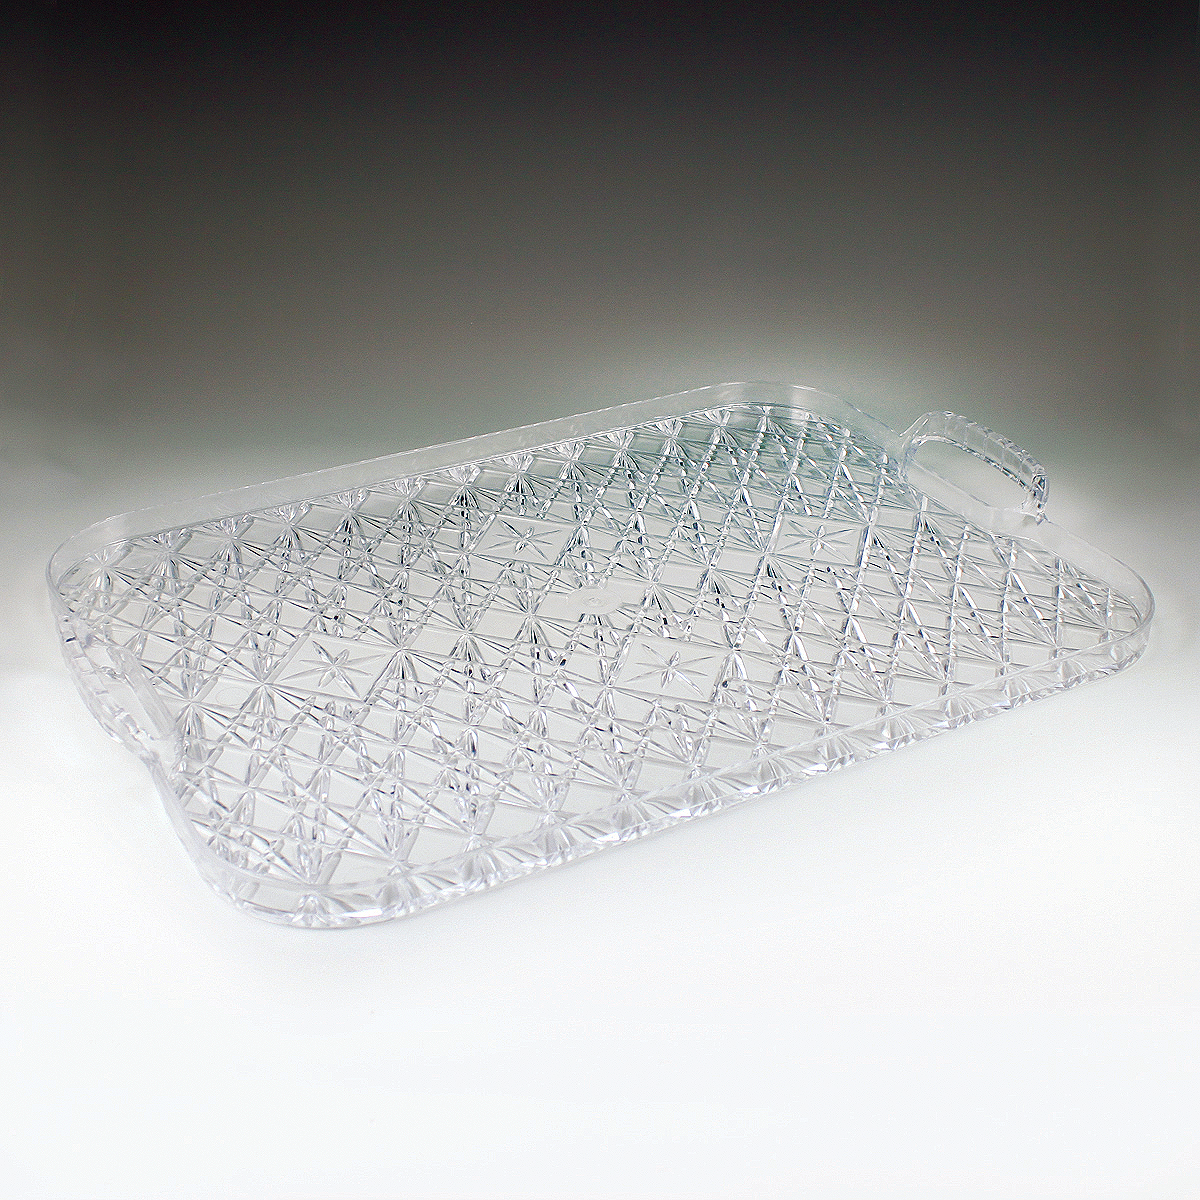 13 Quot X 19 Quot Crystalware Crystal Cut Rectangular Tray W